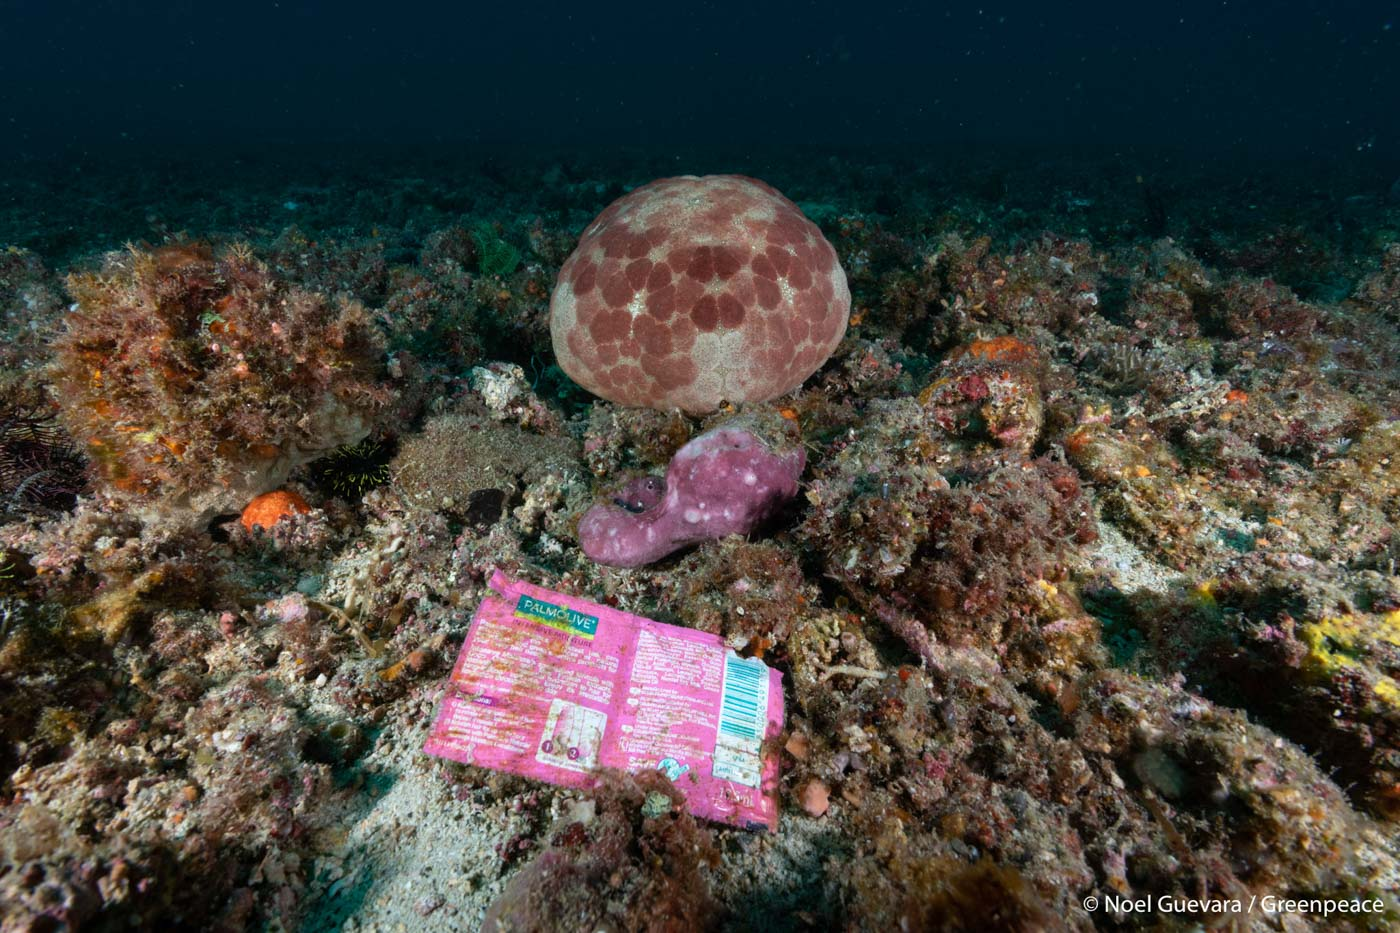 PLASTIC IN THE SEA. Several sachets of shampoo pollute the area along the Verde Island Passage on March 7, 2019. Photo by Noel Guevara/Greenpeace